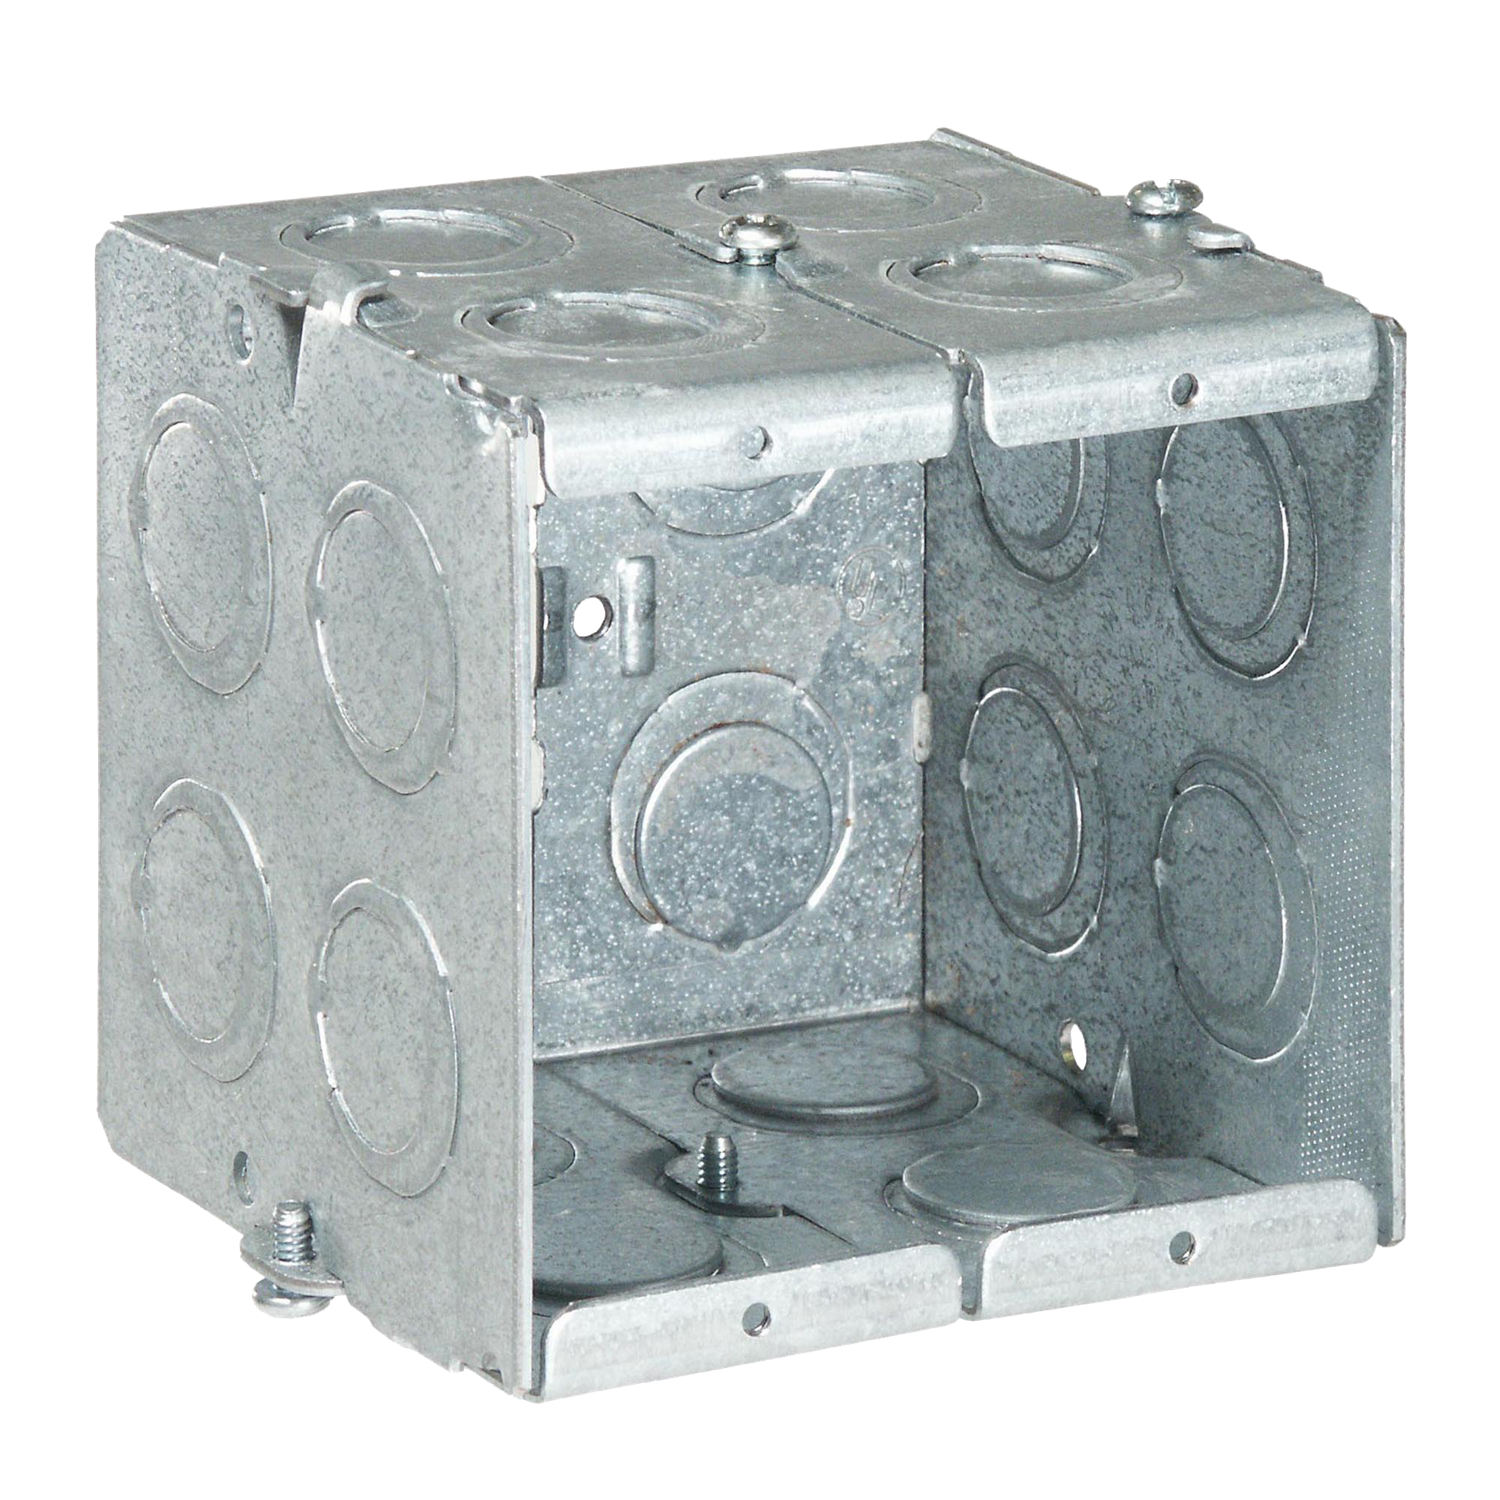 STCGW235G STL-CTY GW235-G 3-1/2D 2G MASO;Steel City® GW-235-G Gangable Masonry Box, Steel, 22 cu-in Capacity, 2 Gangs, 1 Outlets, 20 Knockouts